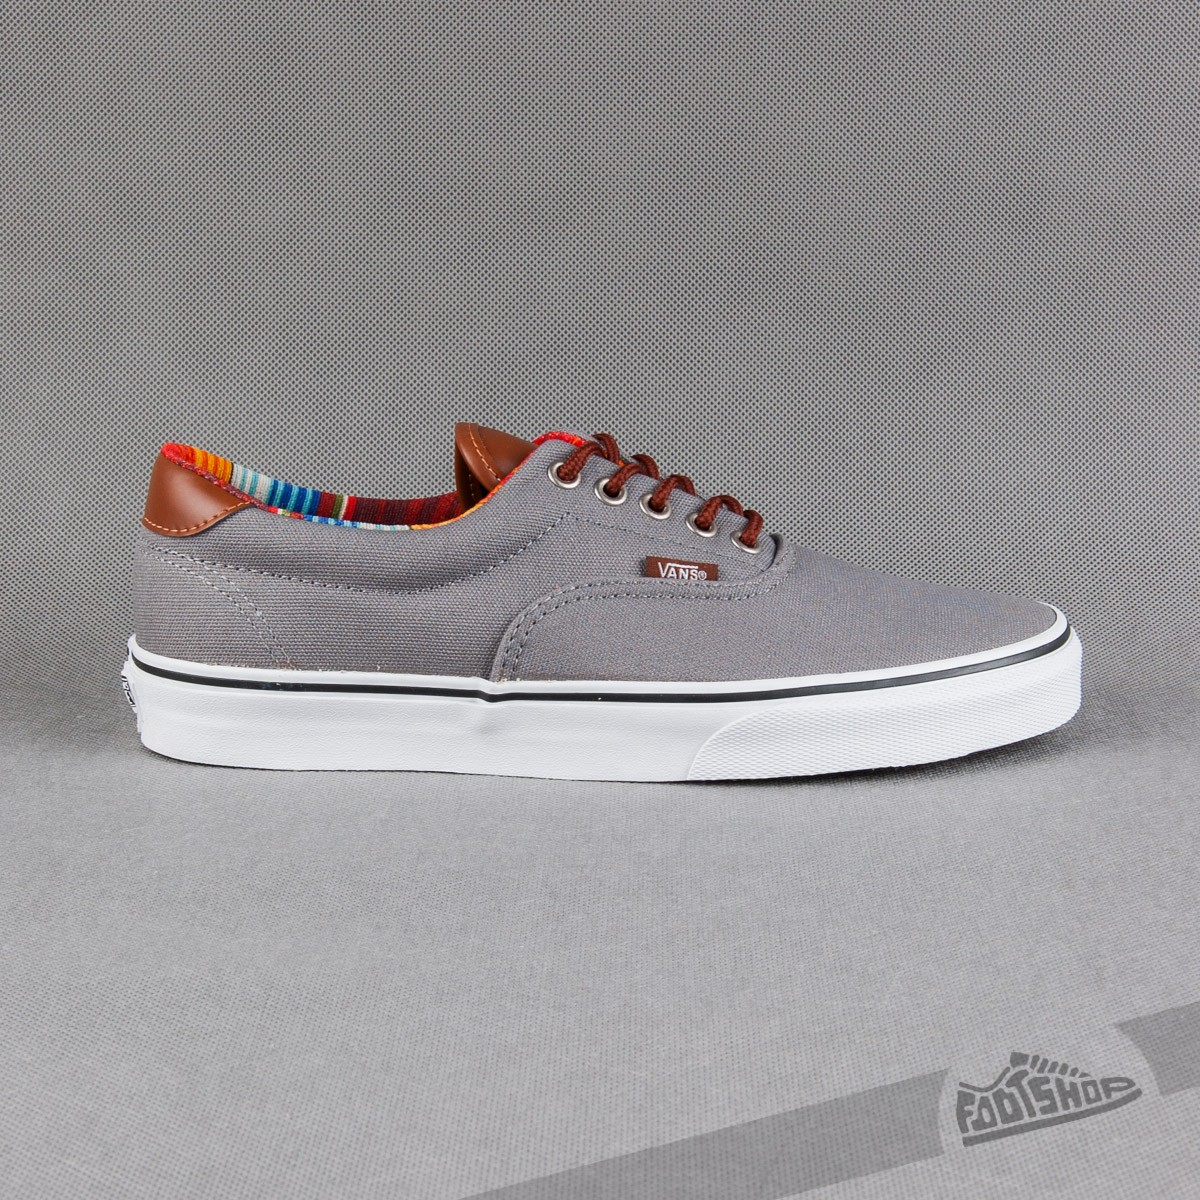 05249b5344 Vans ERA 59 (C L) steel gray